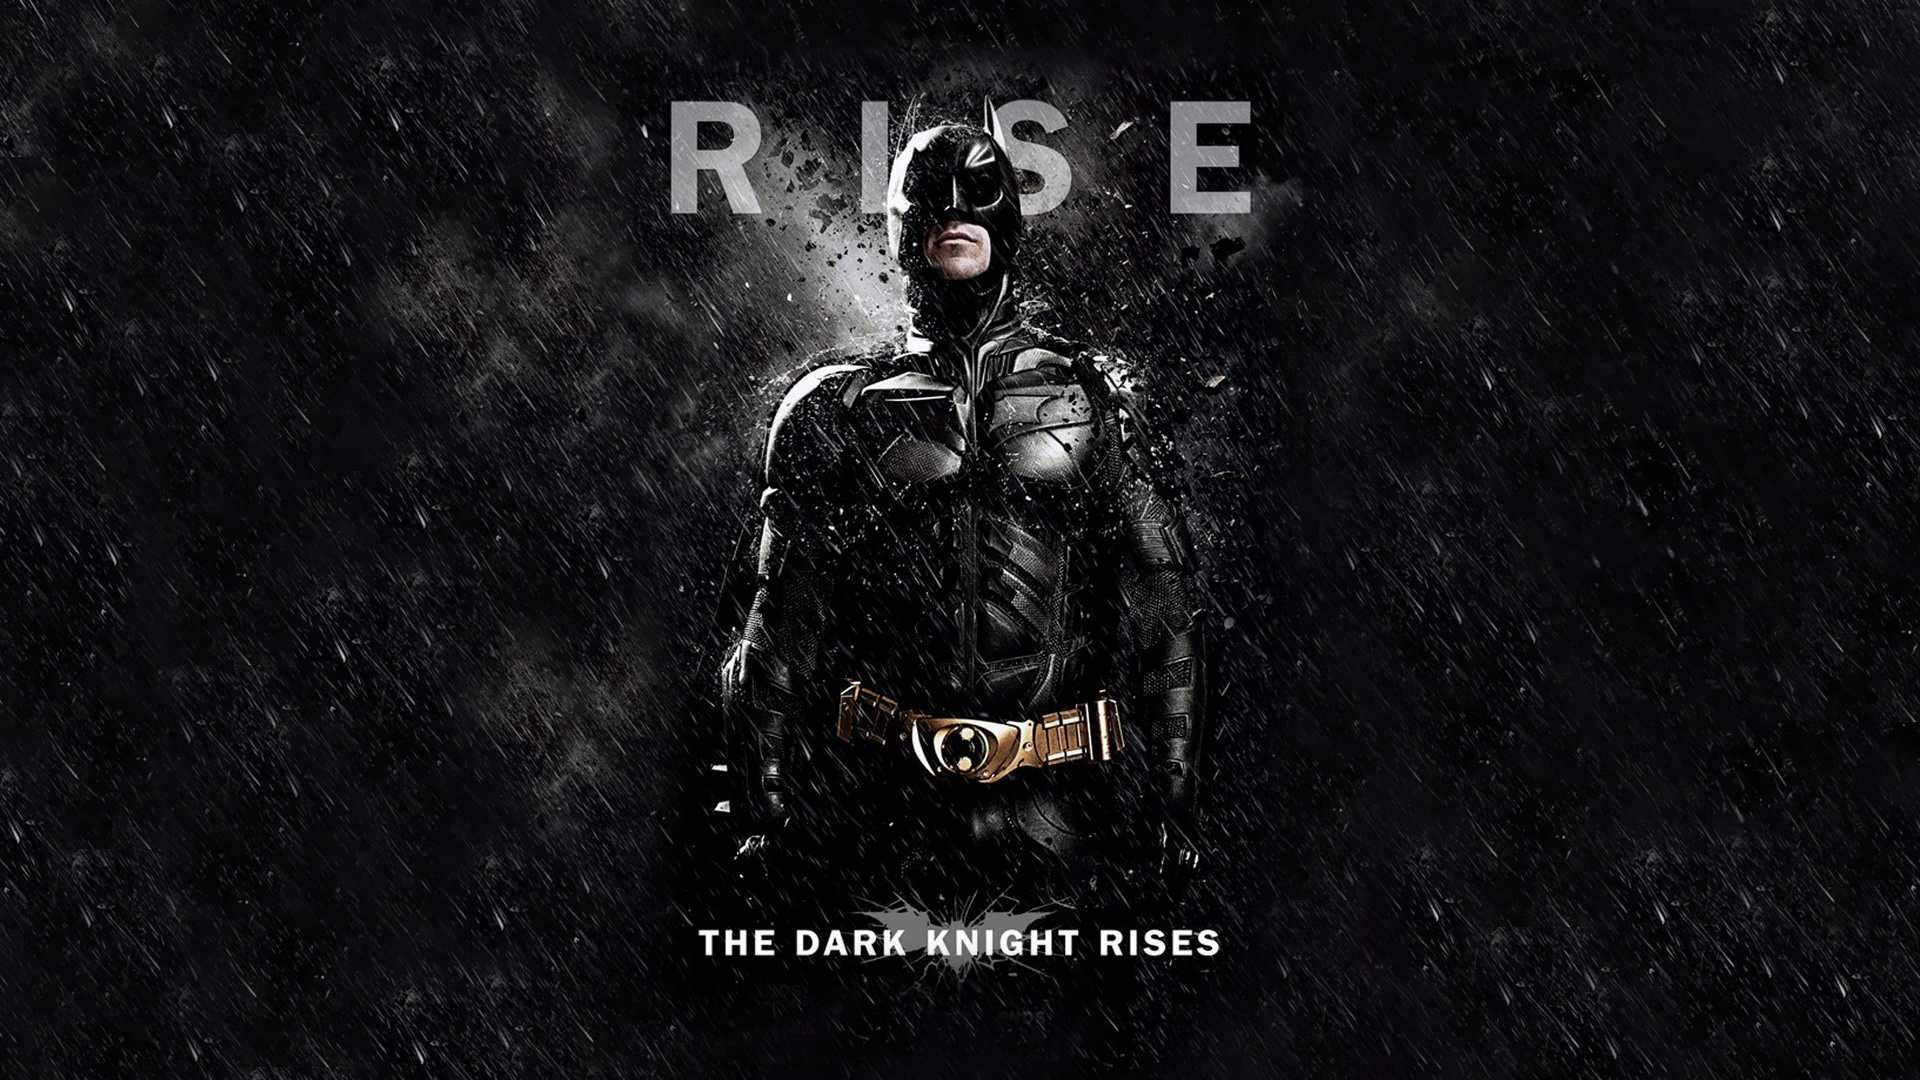 Download the dark knight rises mobile game for android.